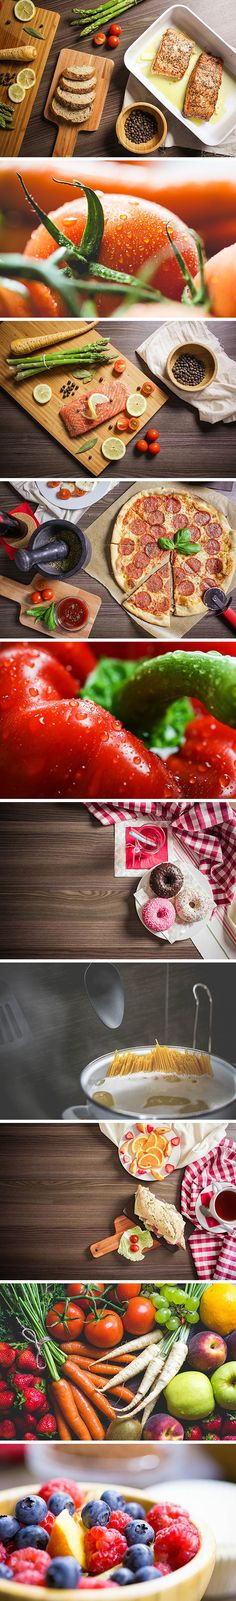 Today's special is a wonderful collection of 10 high resolution photos of tasty foods: from fresh fruits and veggies, to cooked...